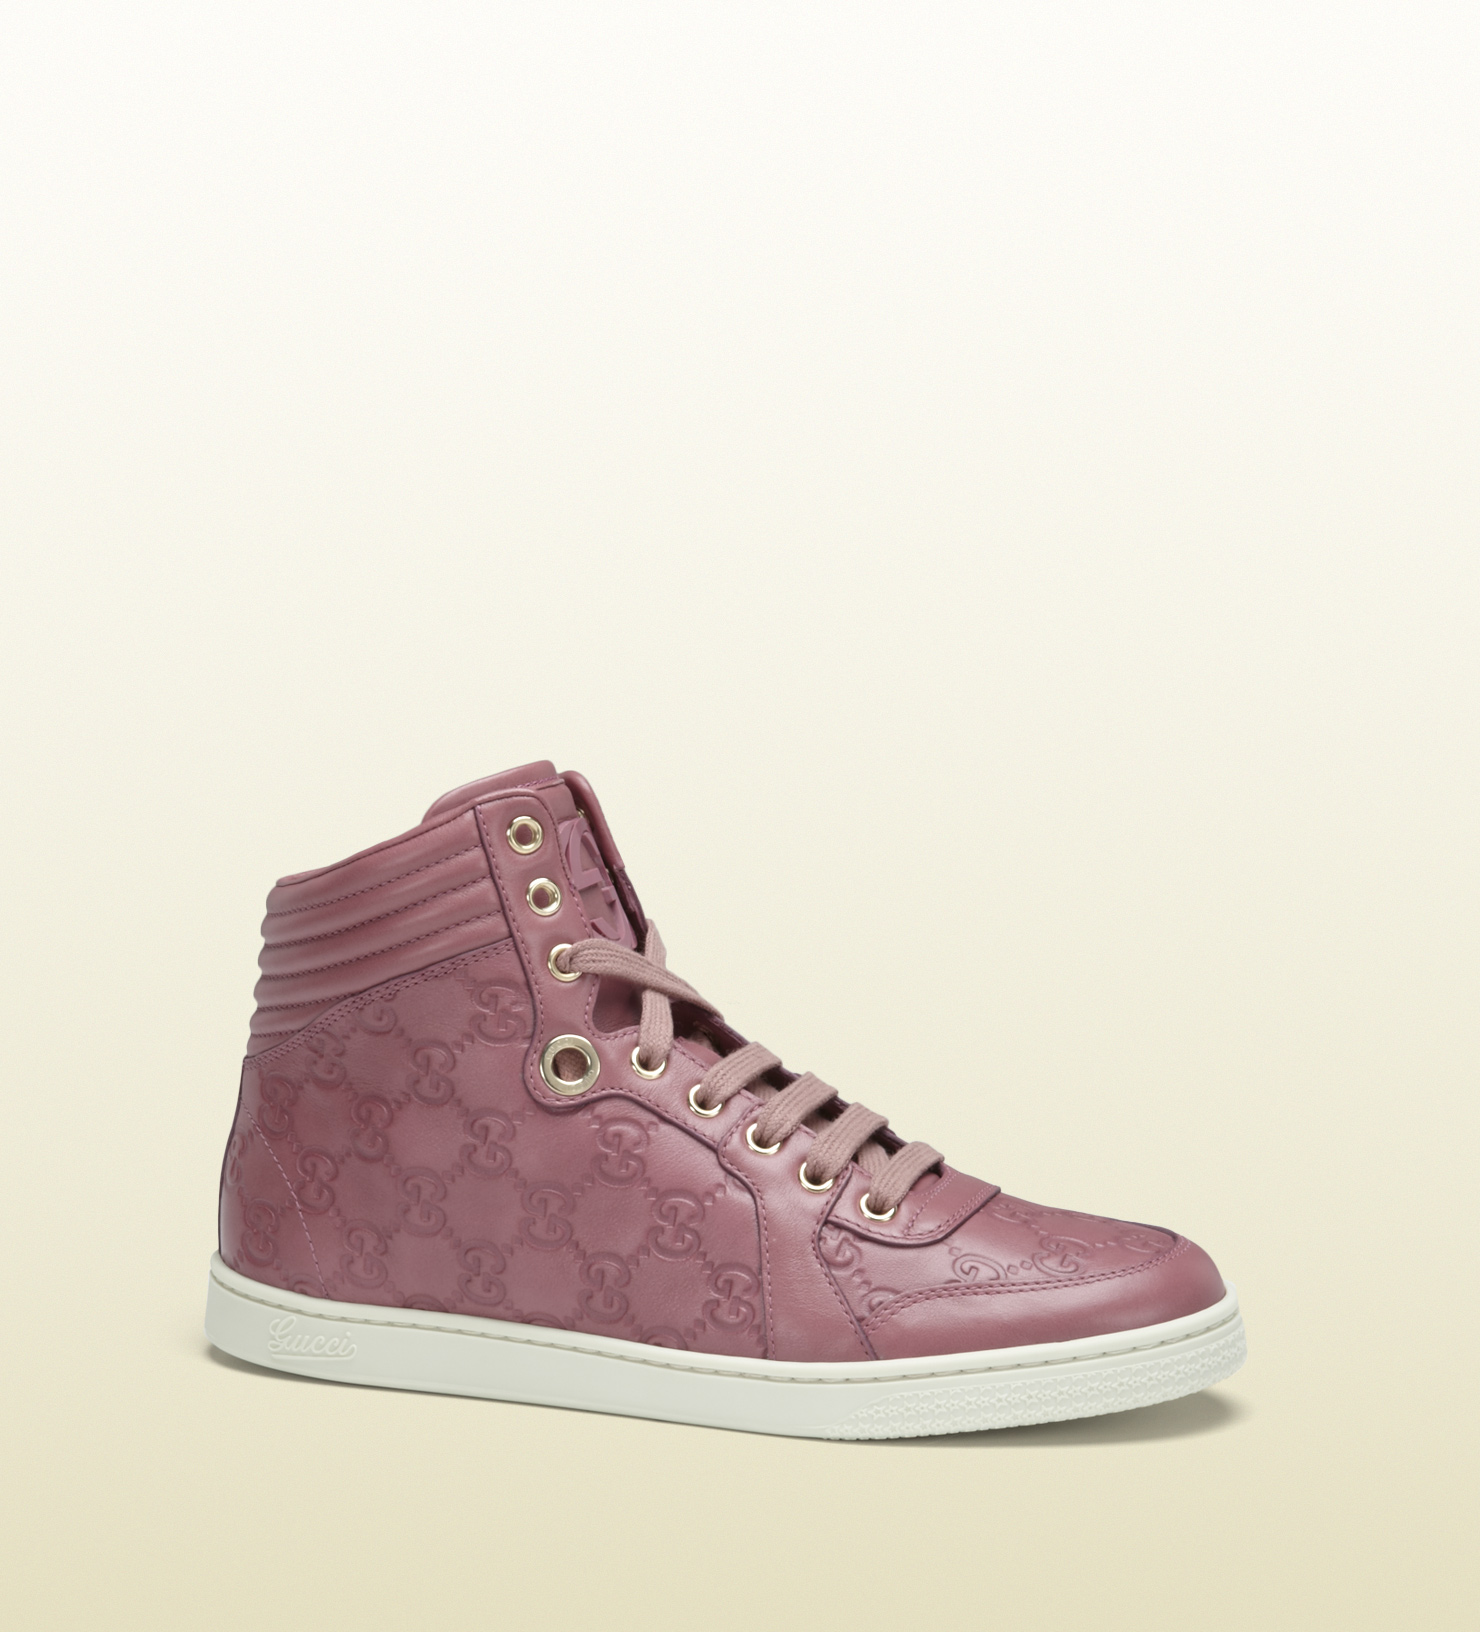 426e2170f4a Gucci Coda Dark Pink Guccissima Leather Hightop Sneaker in Pink for ...